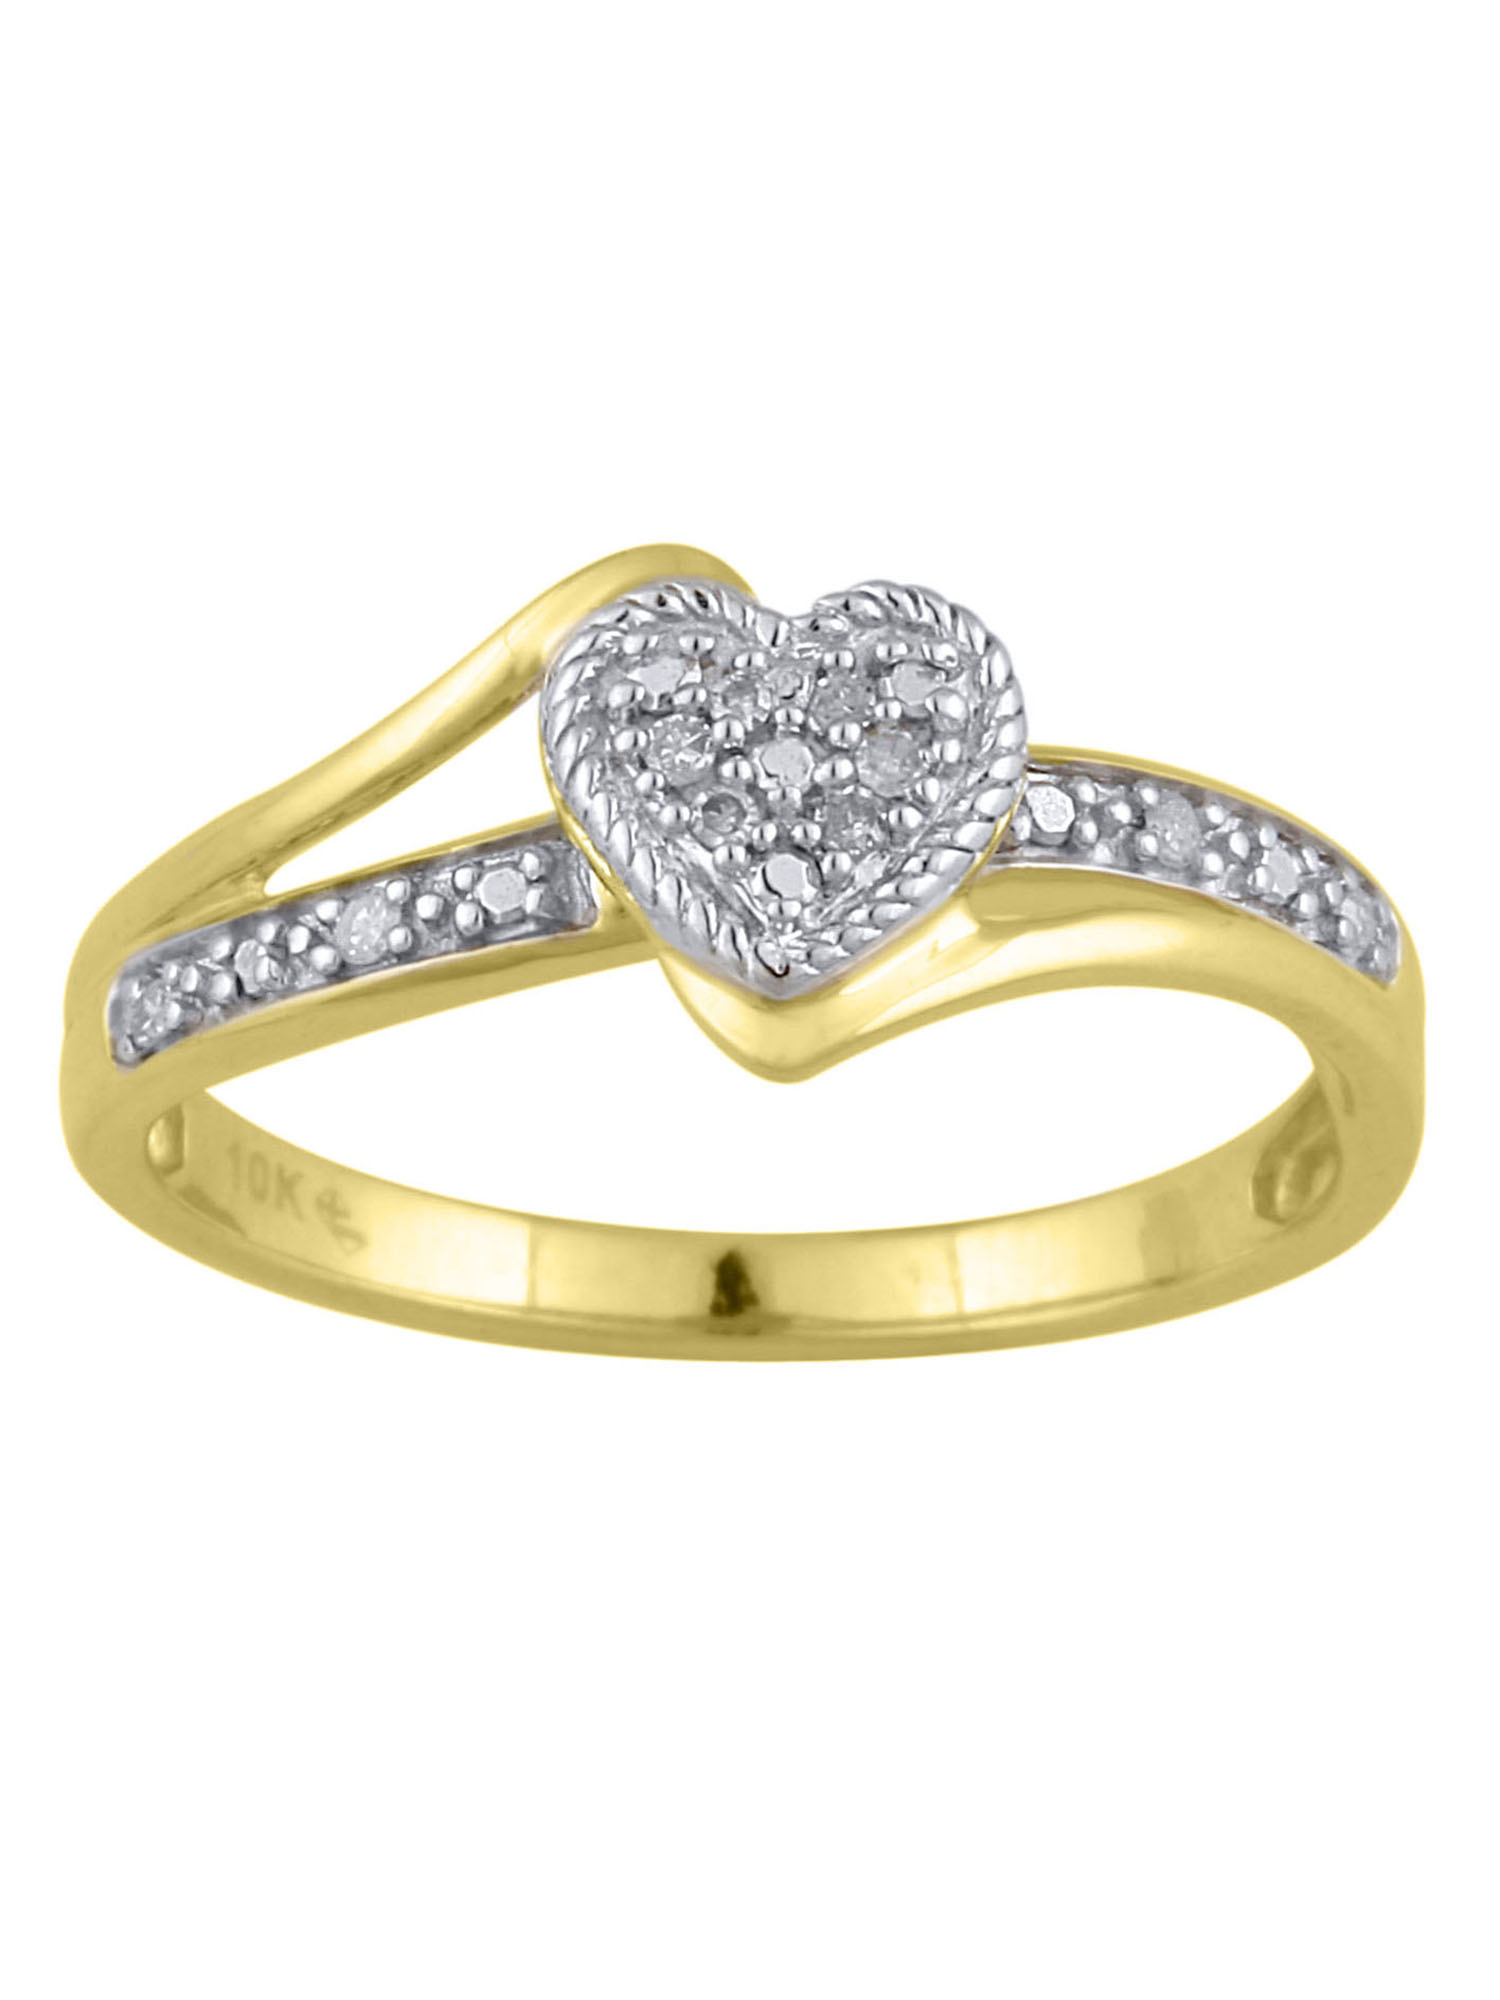 09d1ccc0afcc5 Diamond Accent 10kt Yellow Gold Heart Promise Ring